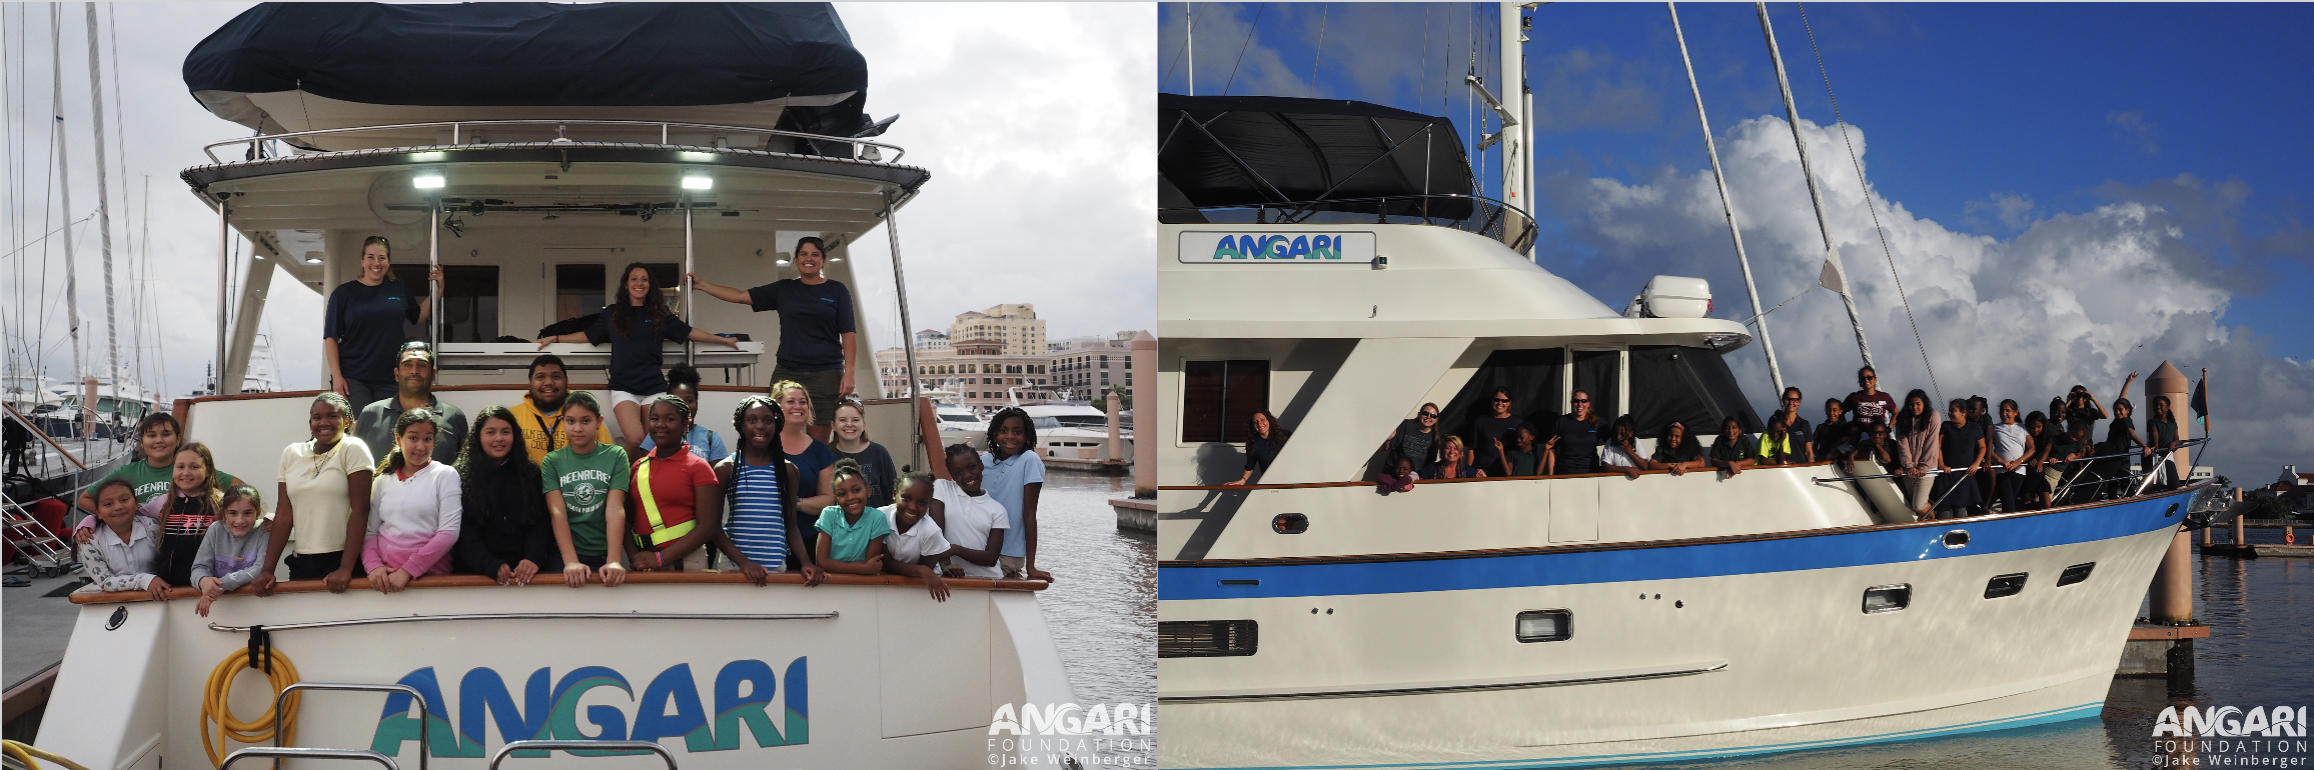 Students Learn About Life And Work Onboard R/V ANGARI